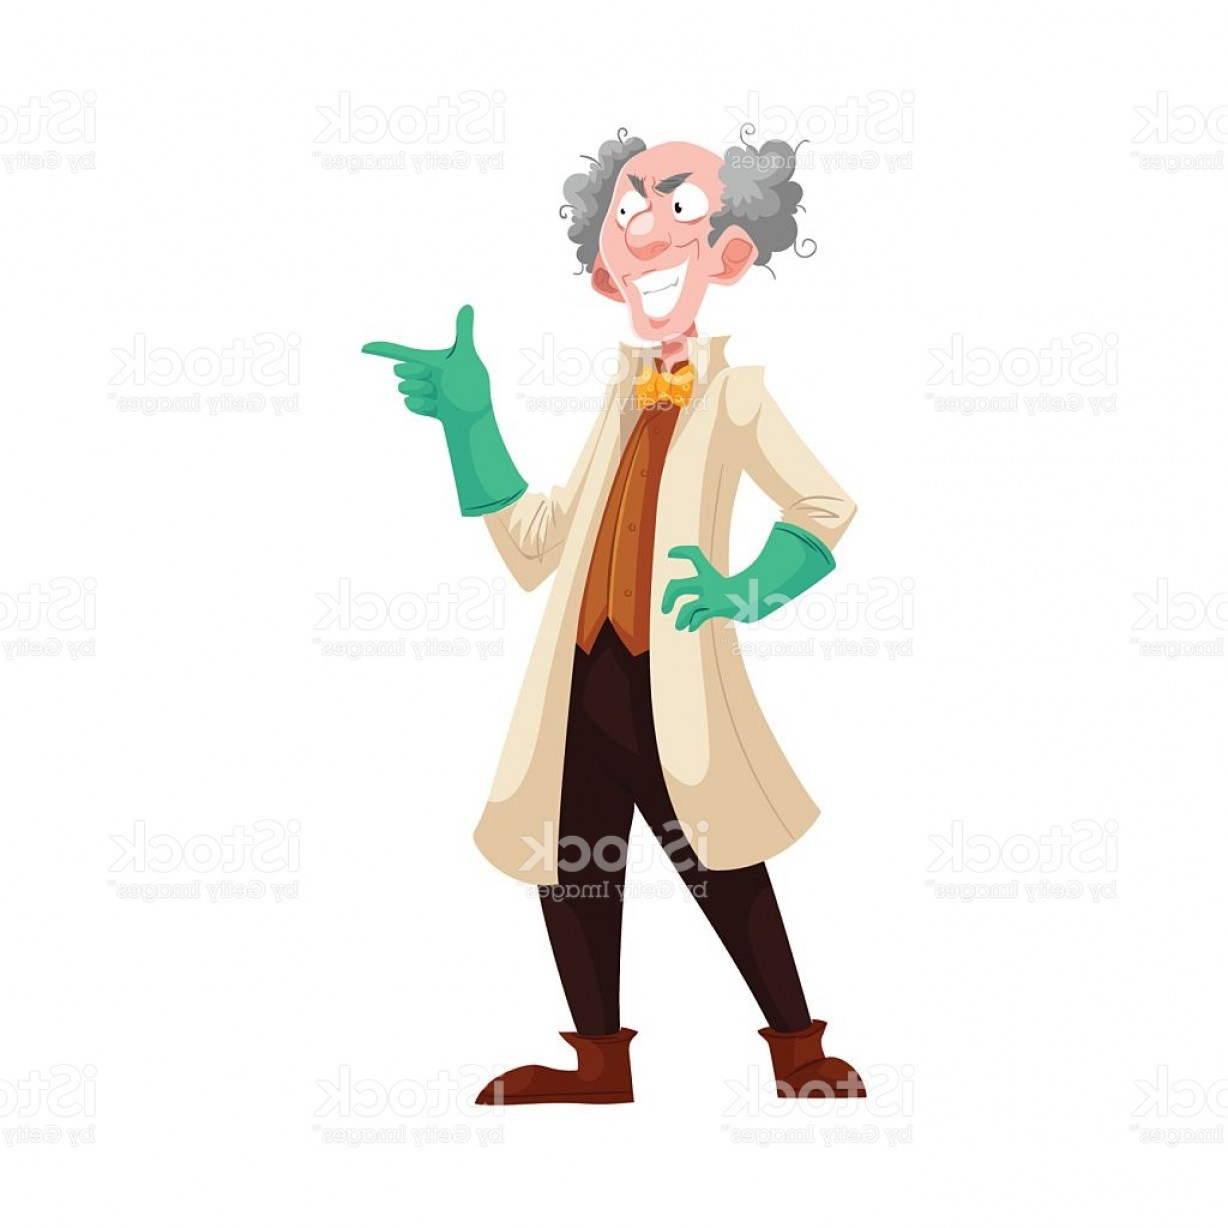 Lab Coat Cartoon Vector: Mad Professor In Lab Coat And Green Rubber Gloves Gm